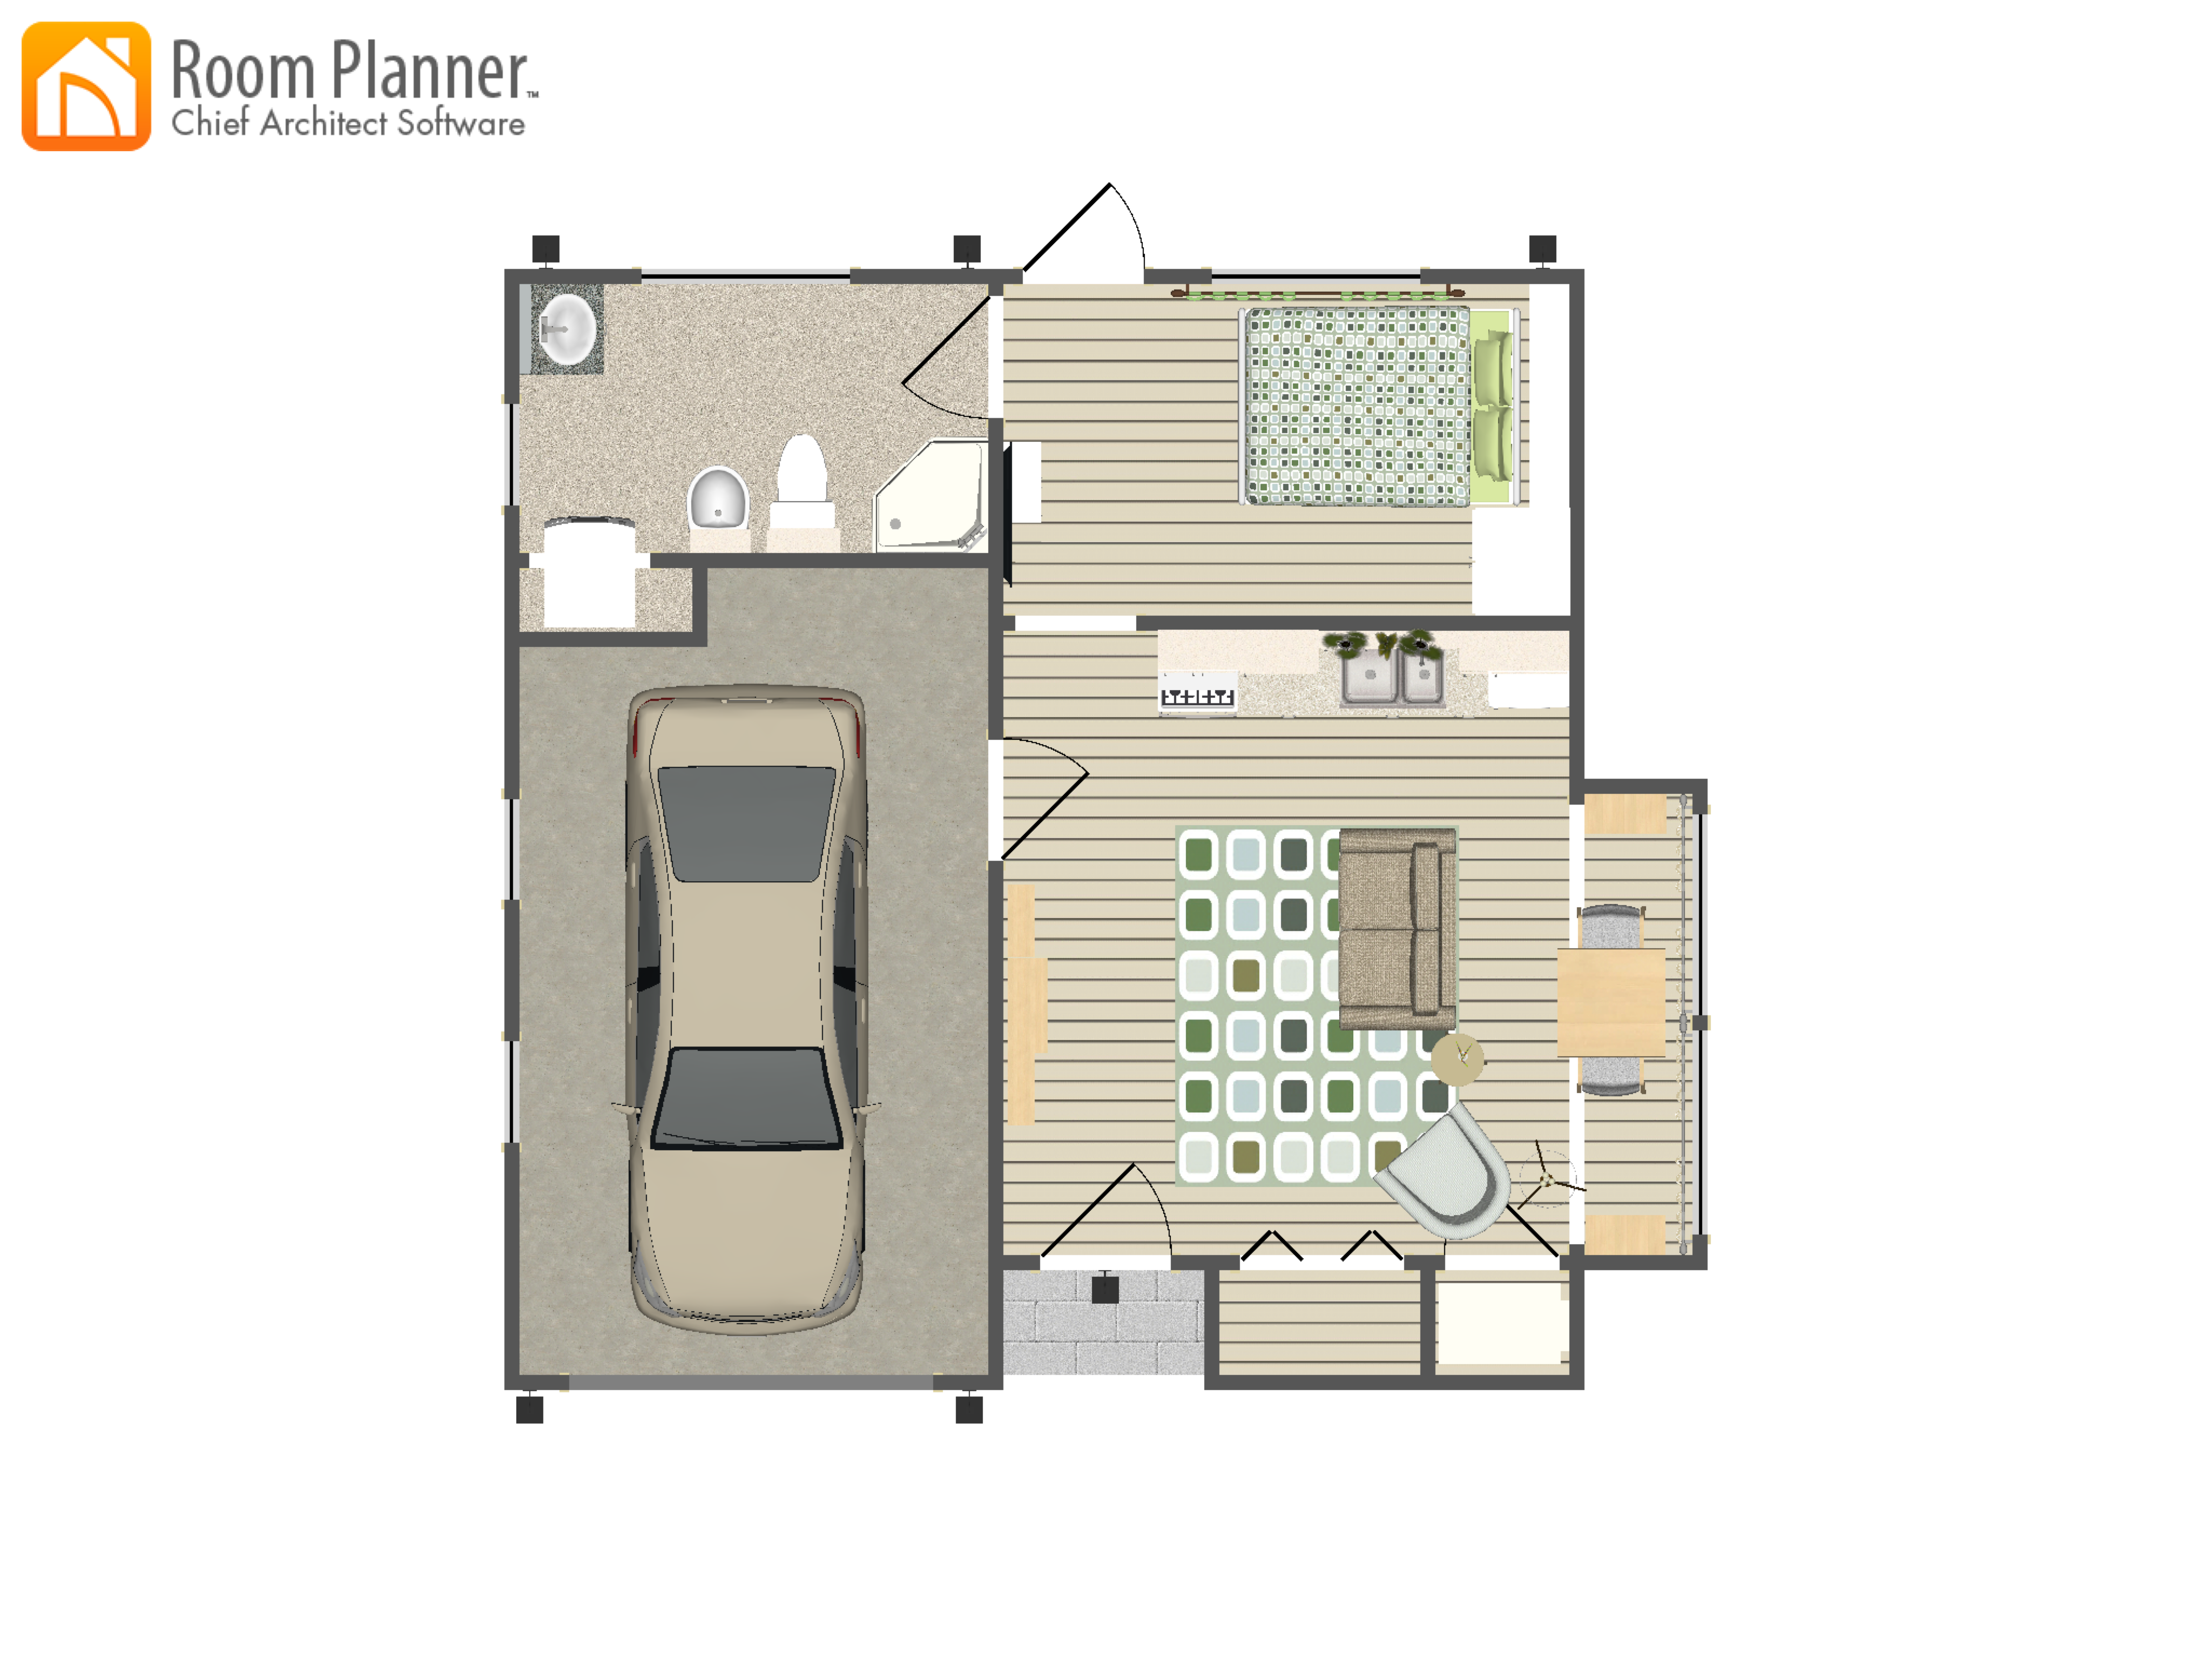 Room Planner create floor plans and 3D models in minutes